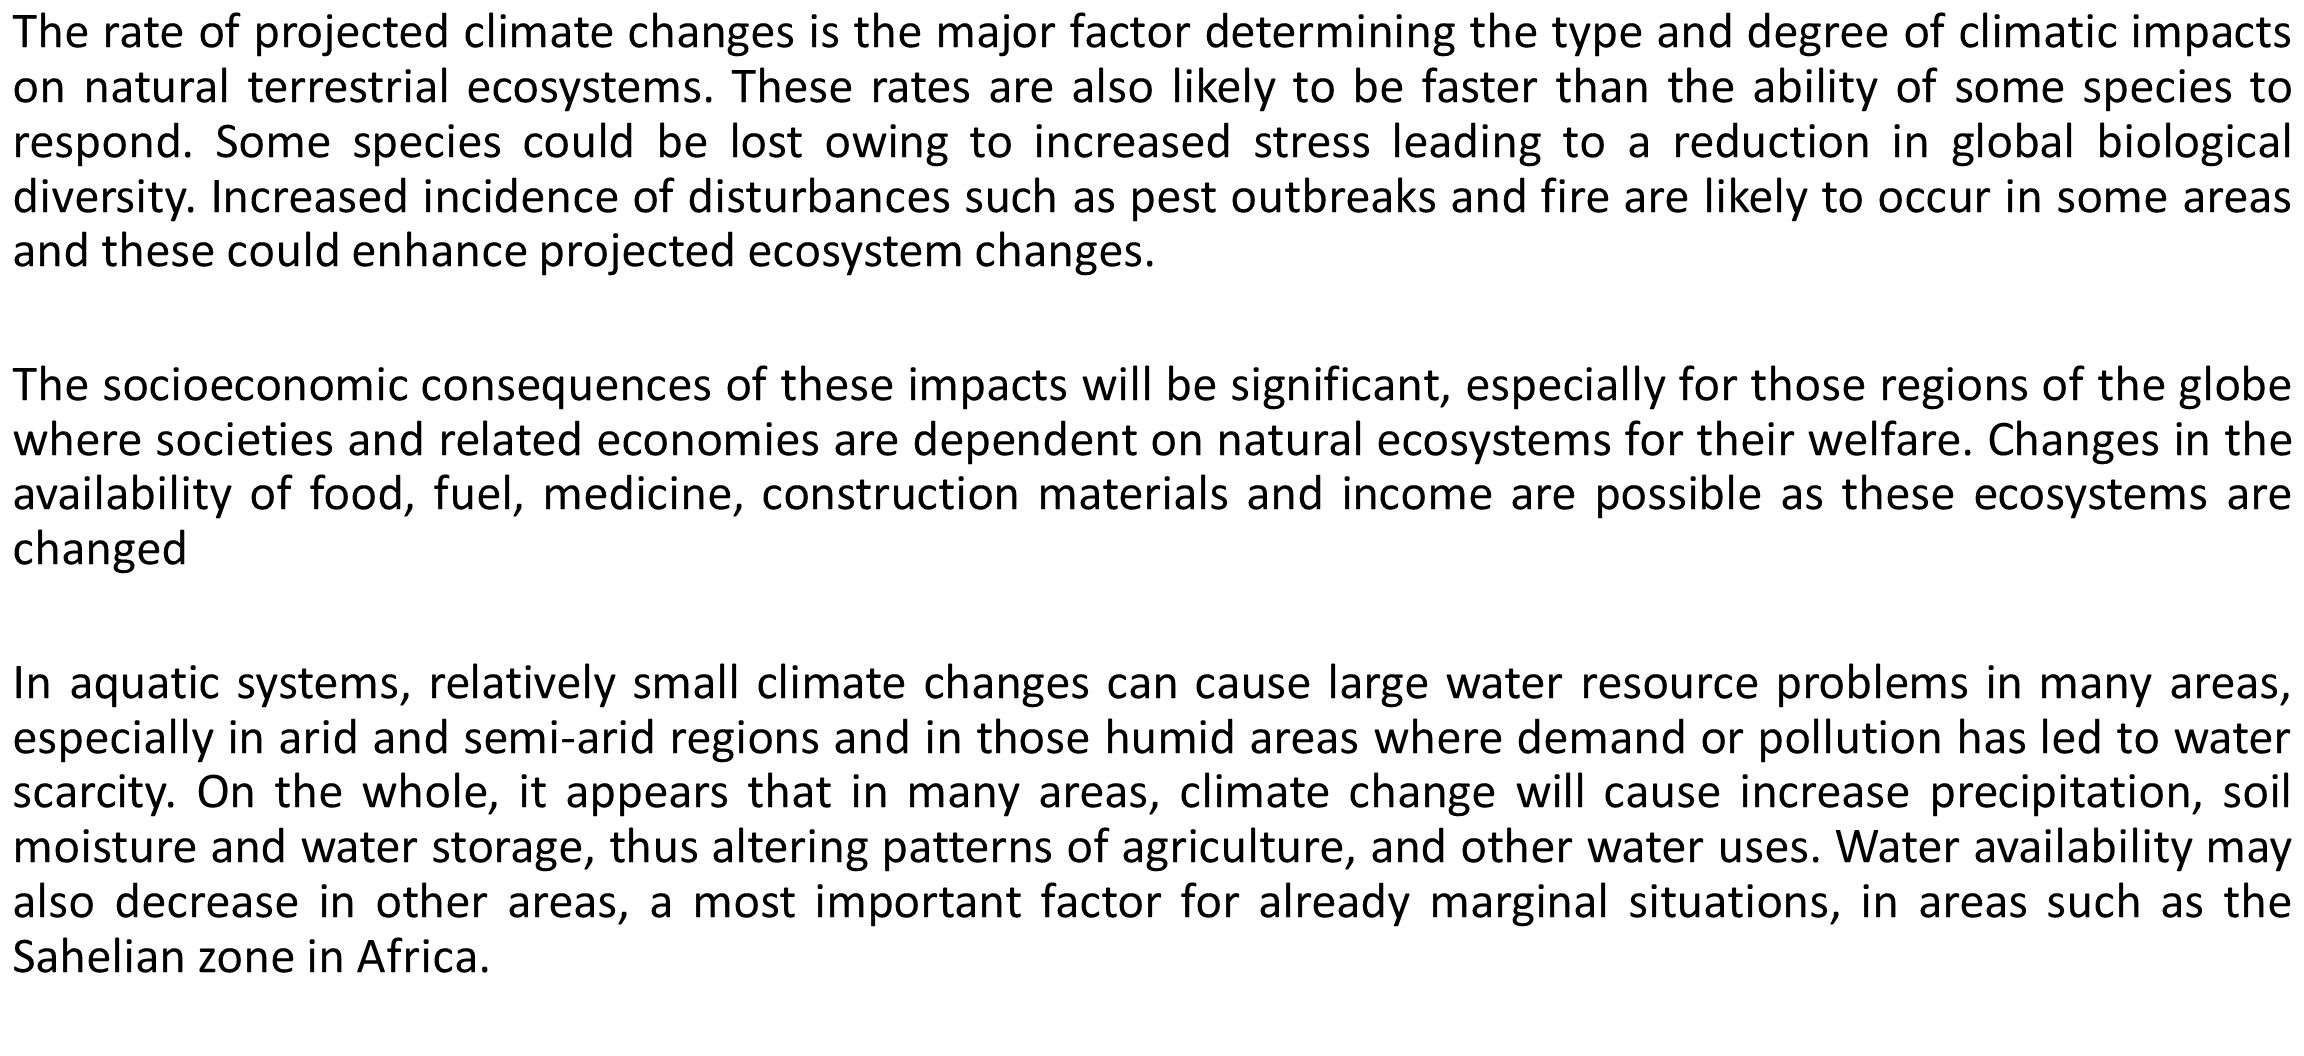 The rate of projected climate changes is the major factor determining the type and degree of climatic impacts on natural terrestrial ecosystems. These rates are also likely to be faster than the ability of some species to respond. Some species could be lost owing to increased stress leading to a reduction in global biological diversity. Increased incidence of disturbances such as pest outbreaks and fire are likely to occur in some areas and these could enhance projected ecosystem changes.